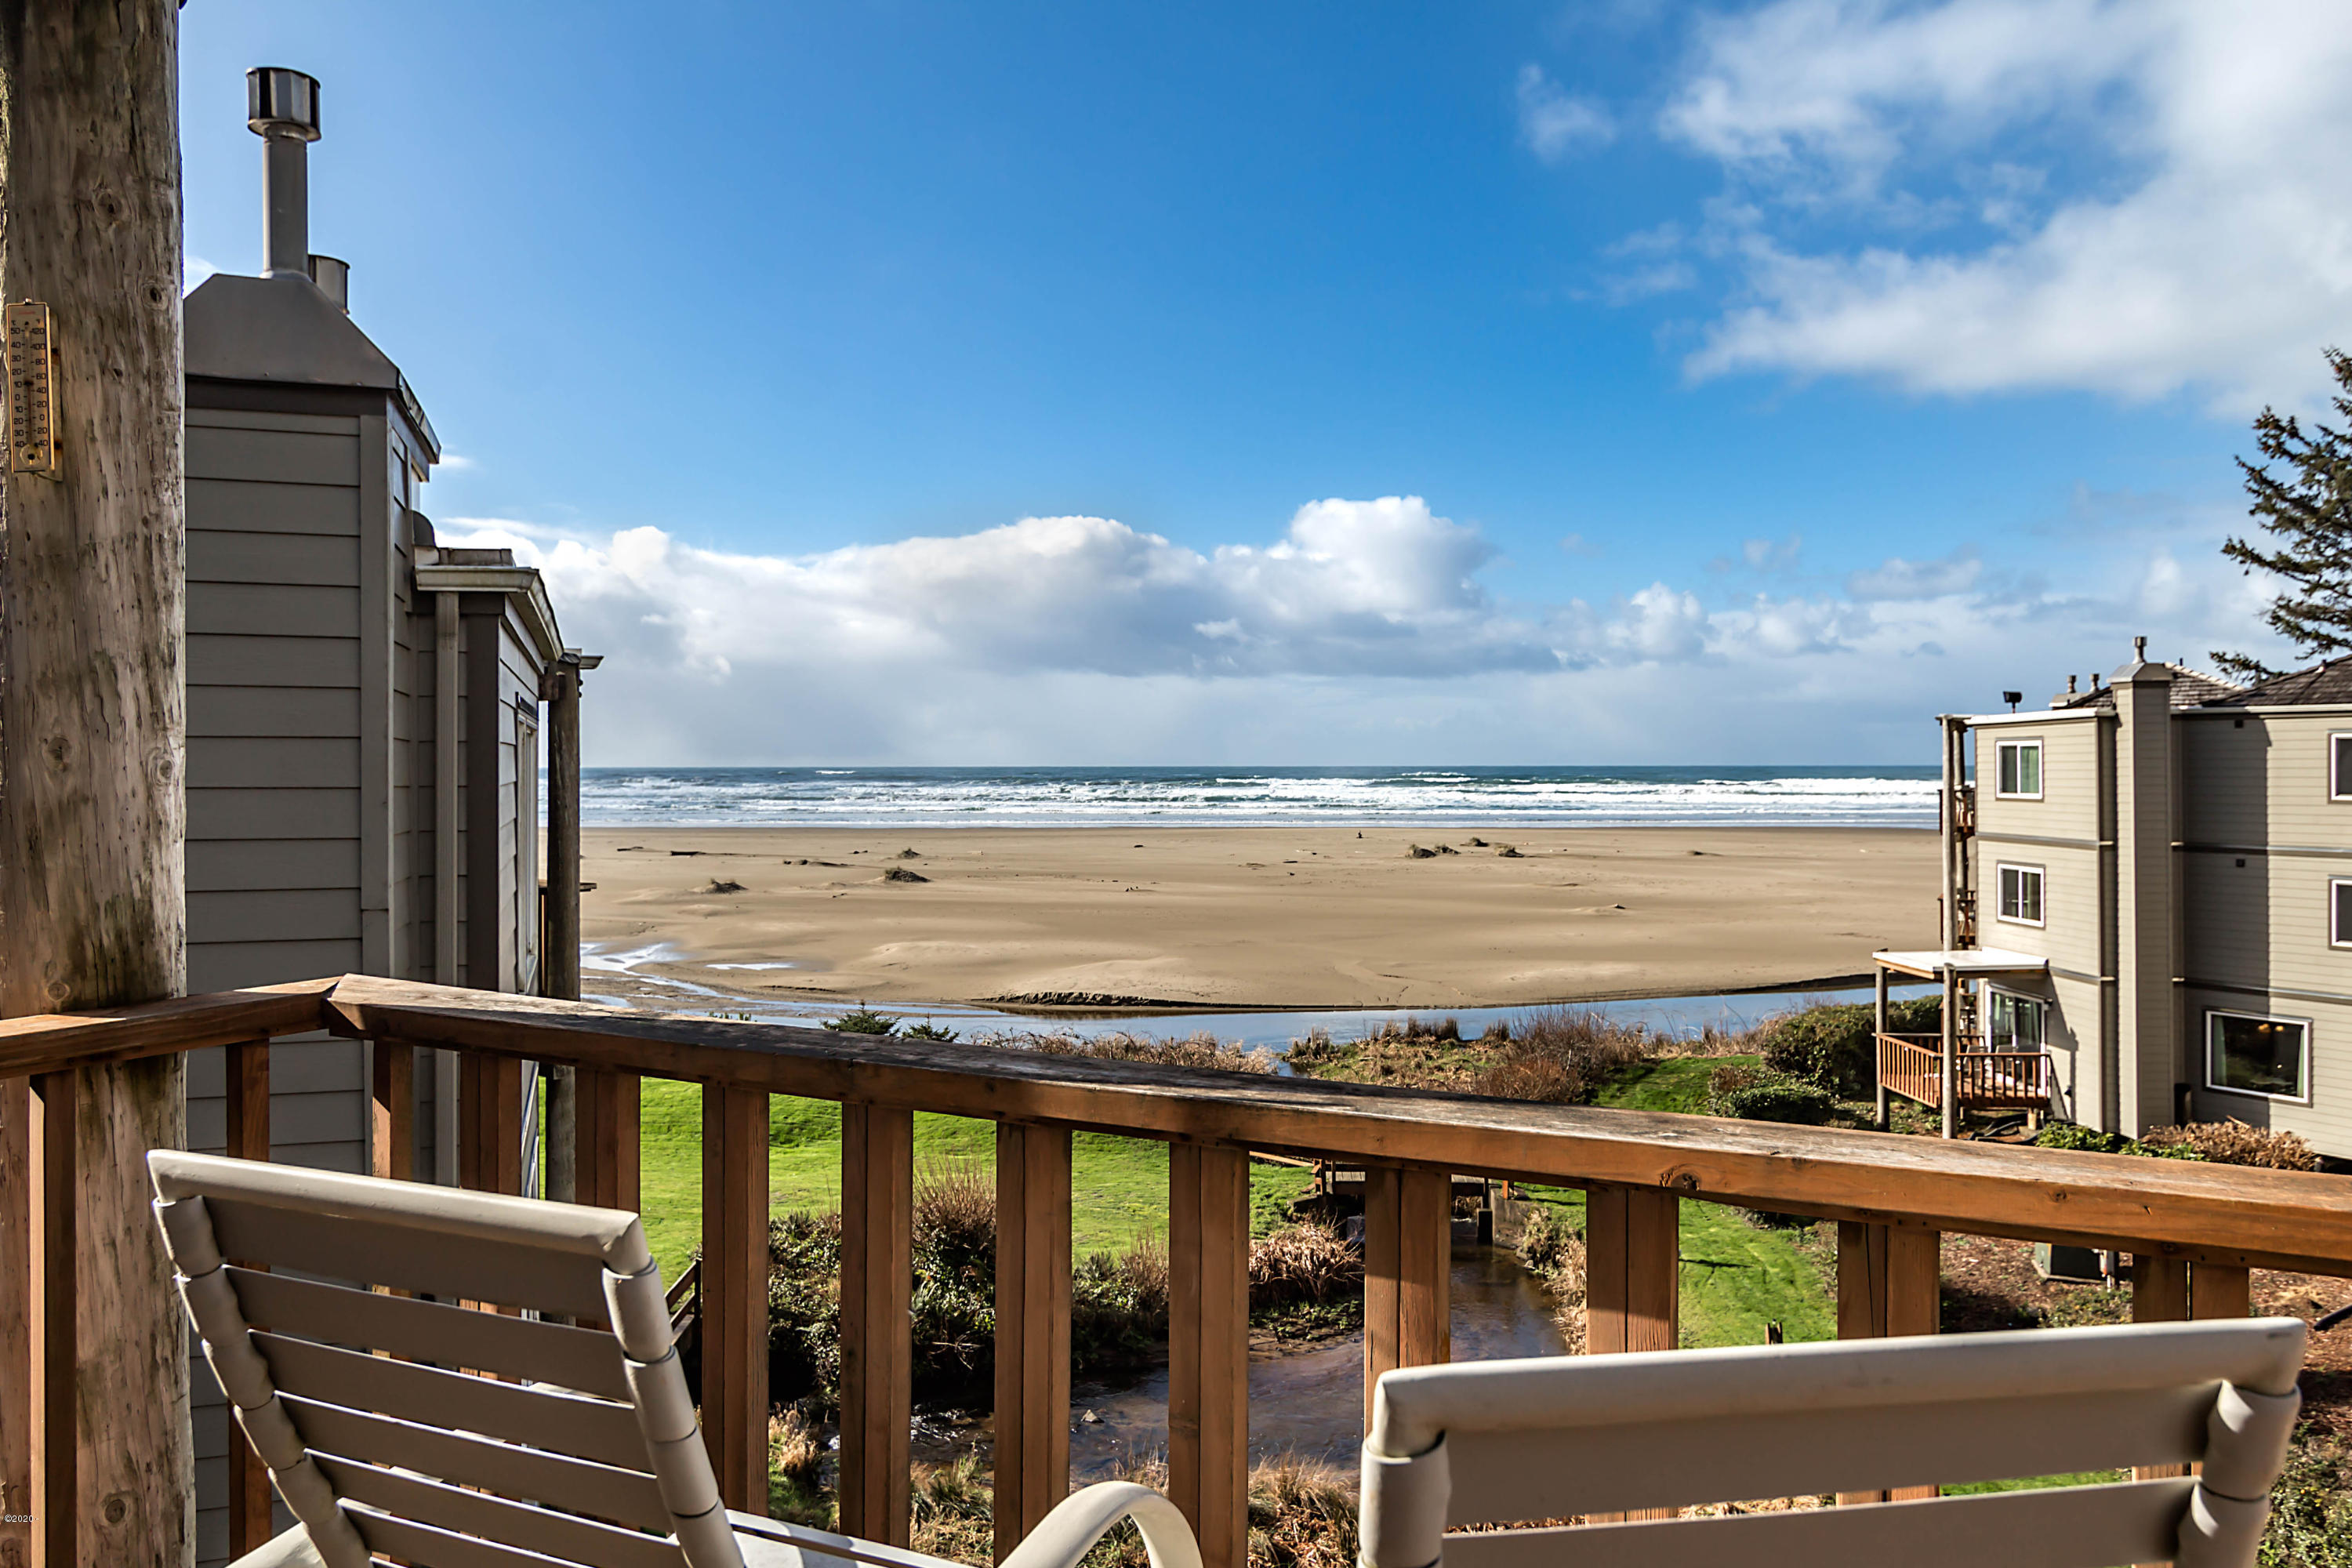 3641 NW Oceanview Dr, 119, Newport, OR 97365 - 3641 NW Oceanview Dr #119 - web-2